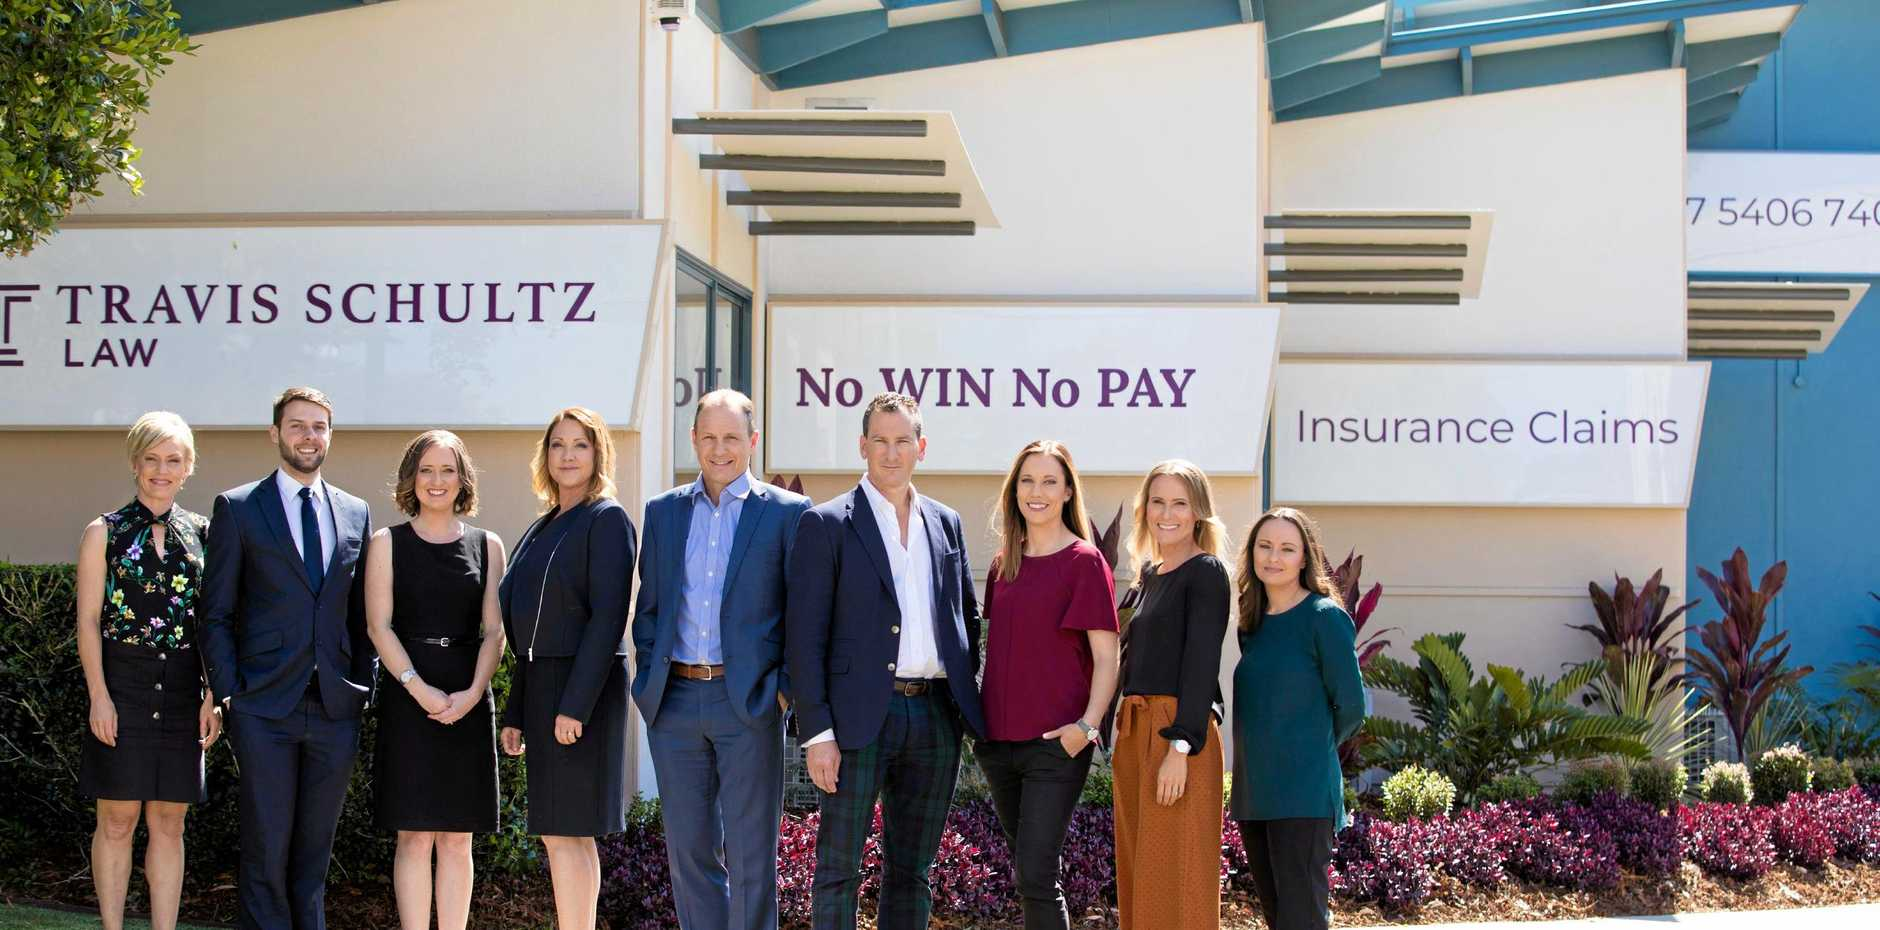 TEAM WORK: The team at Travis Schultz Law celebrated one year in business in May and has grown from five to 18 people in the first year of operation. Some of the members of the Travis Schultz Law team, from is Kylie Schweikert, Hayden Wright, Elle Rosenlund, Lisa Schultz, Michael Callow, Travis Schultz, Kelly Phelps, Inga Lind and Amy Smith.